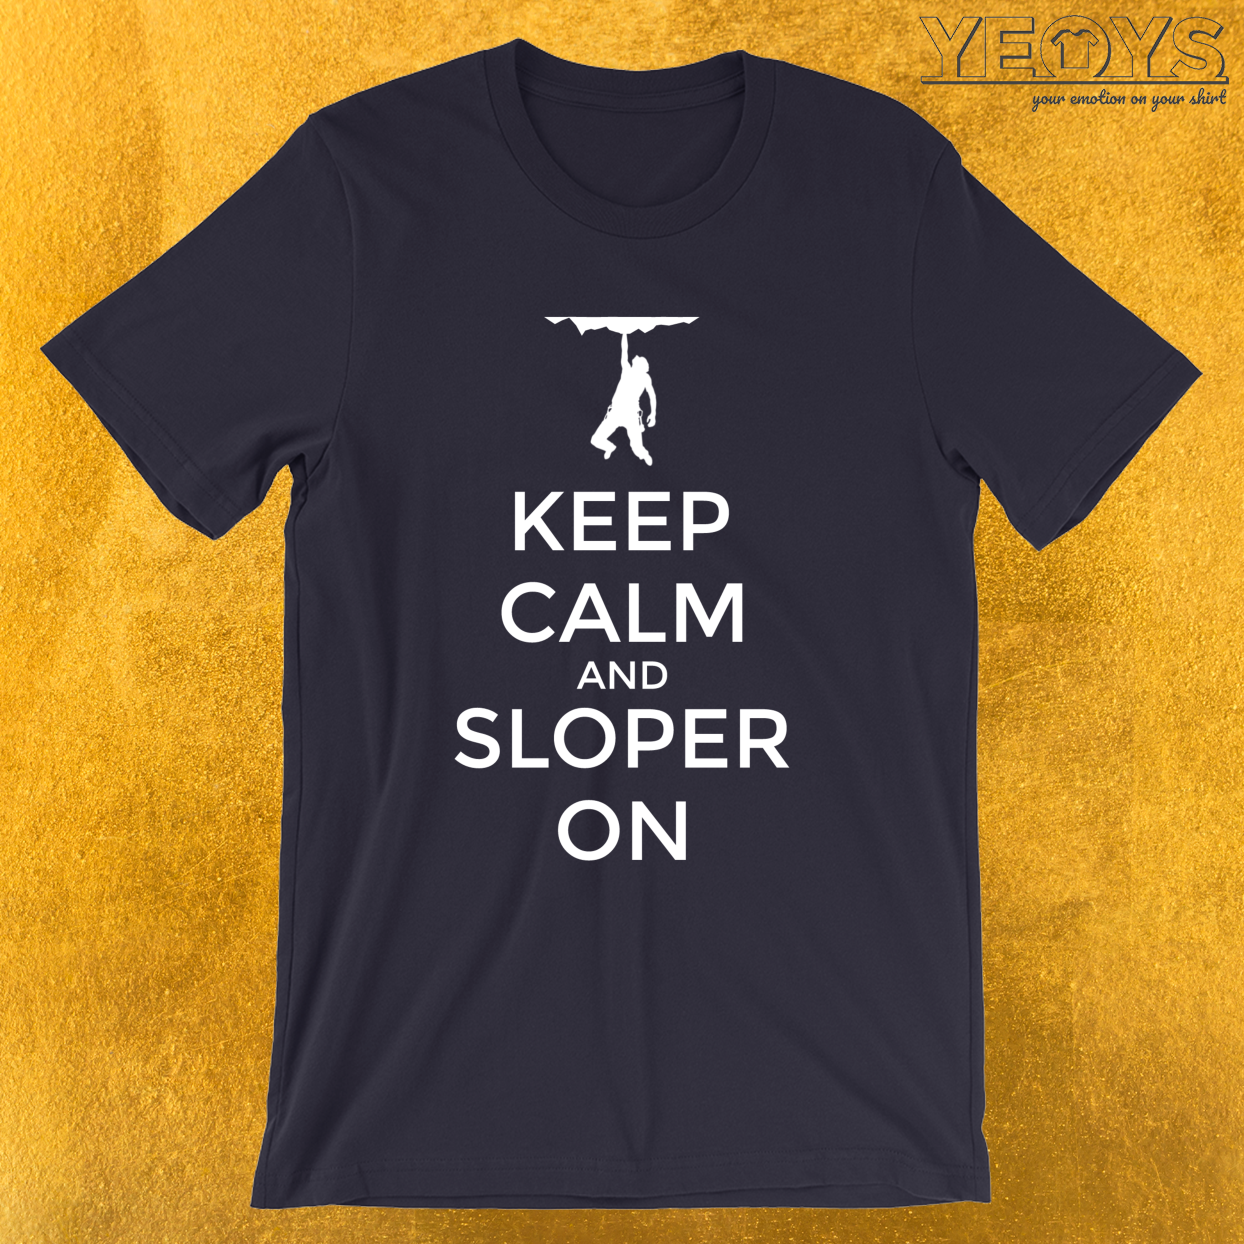 Keep Calm And Sloper On – Rock Climbing Tee